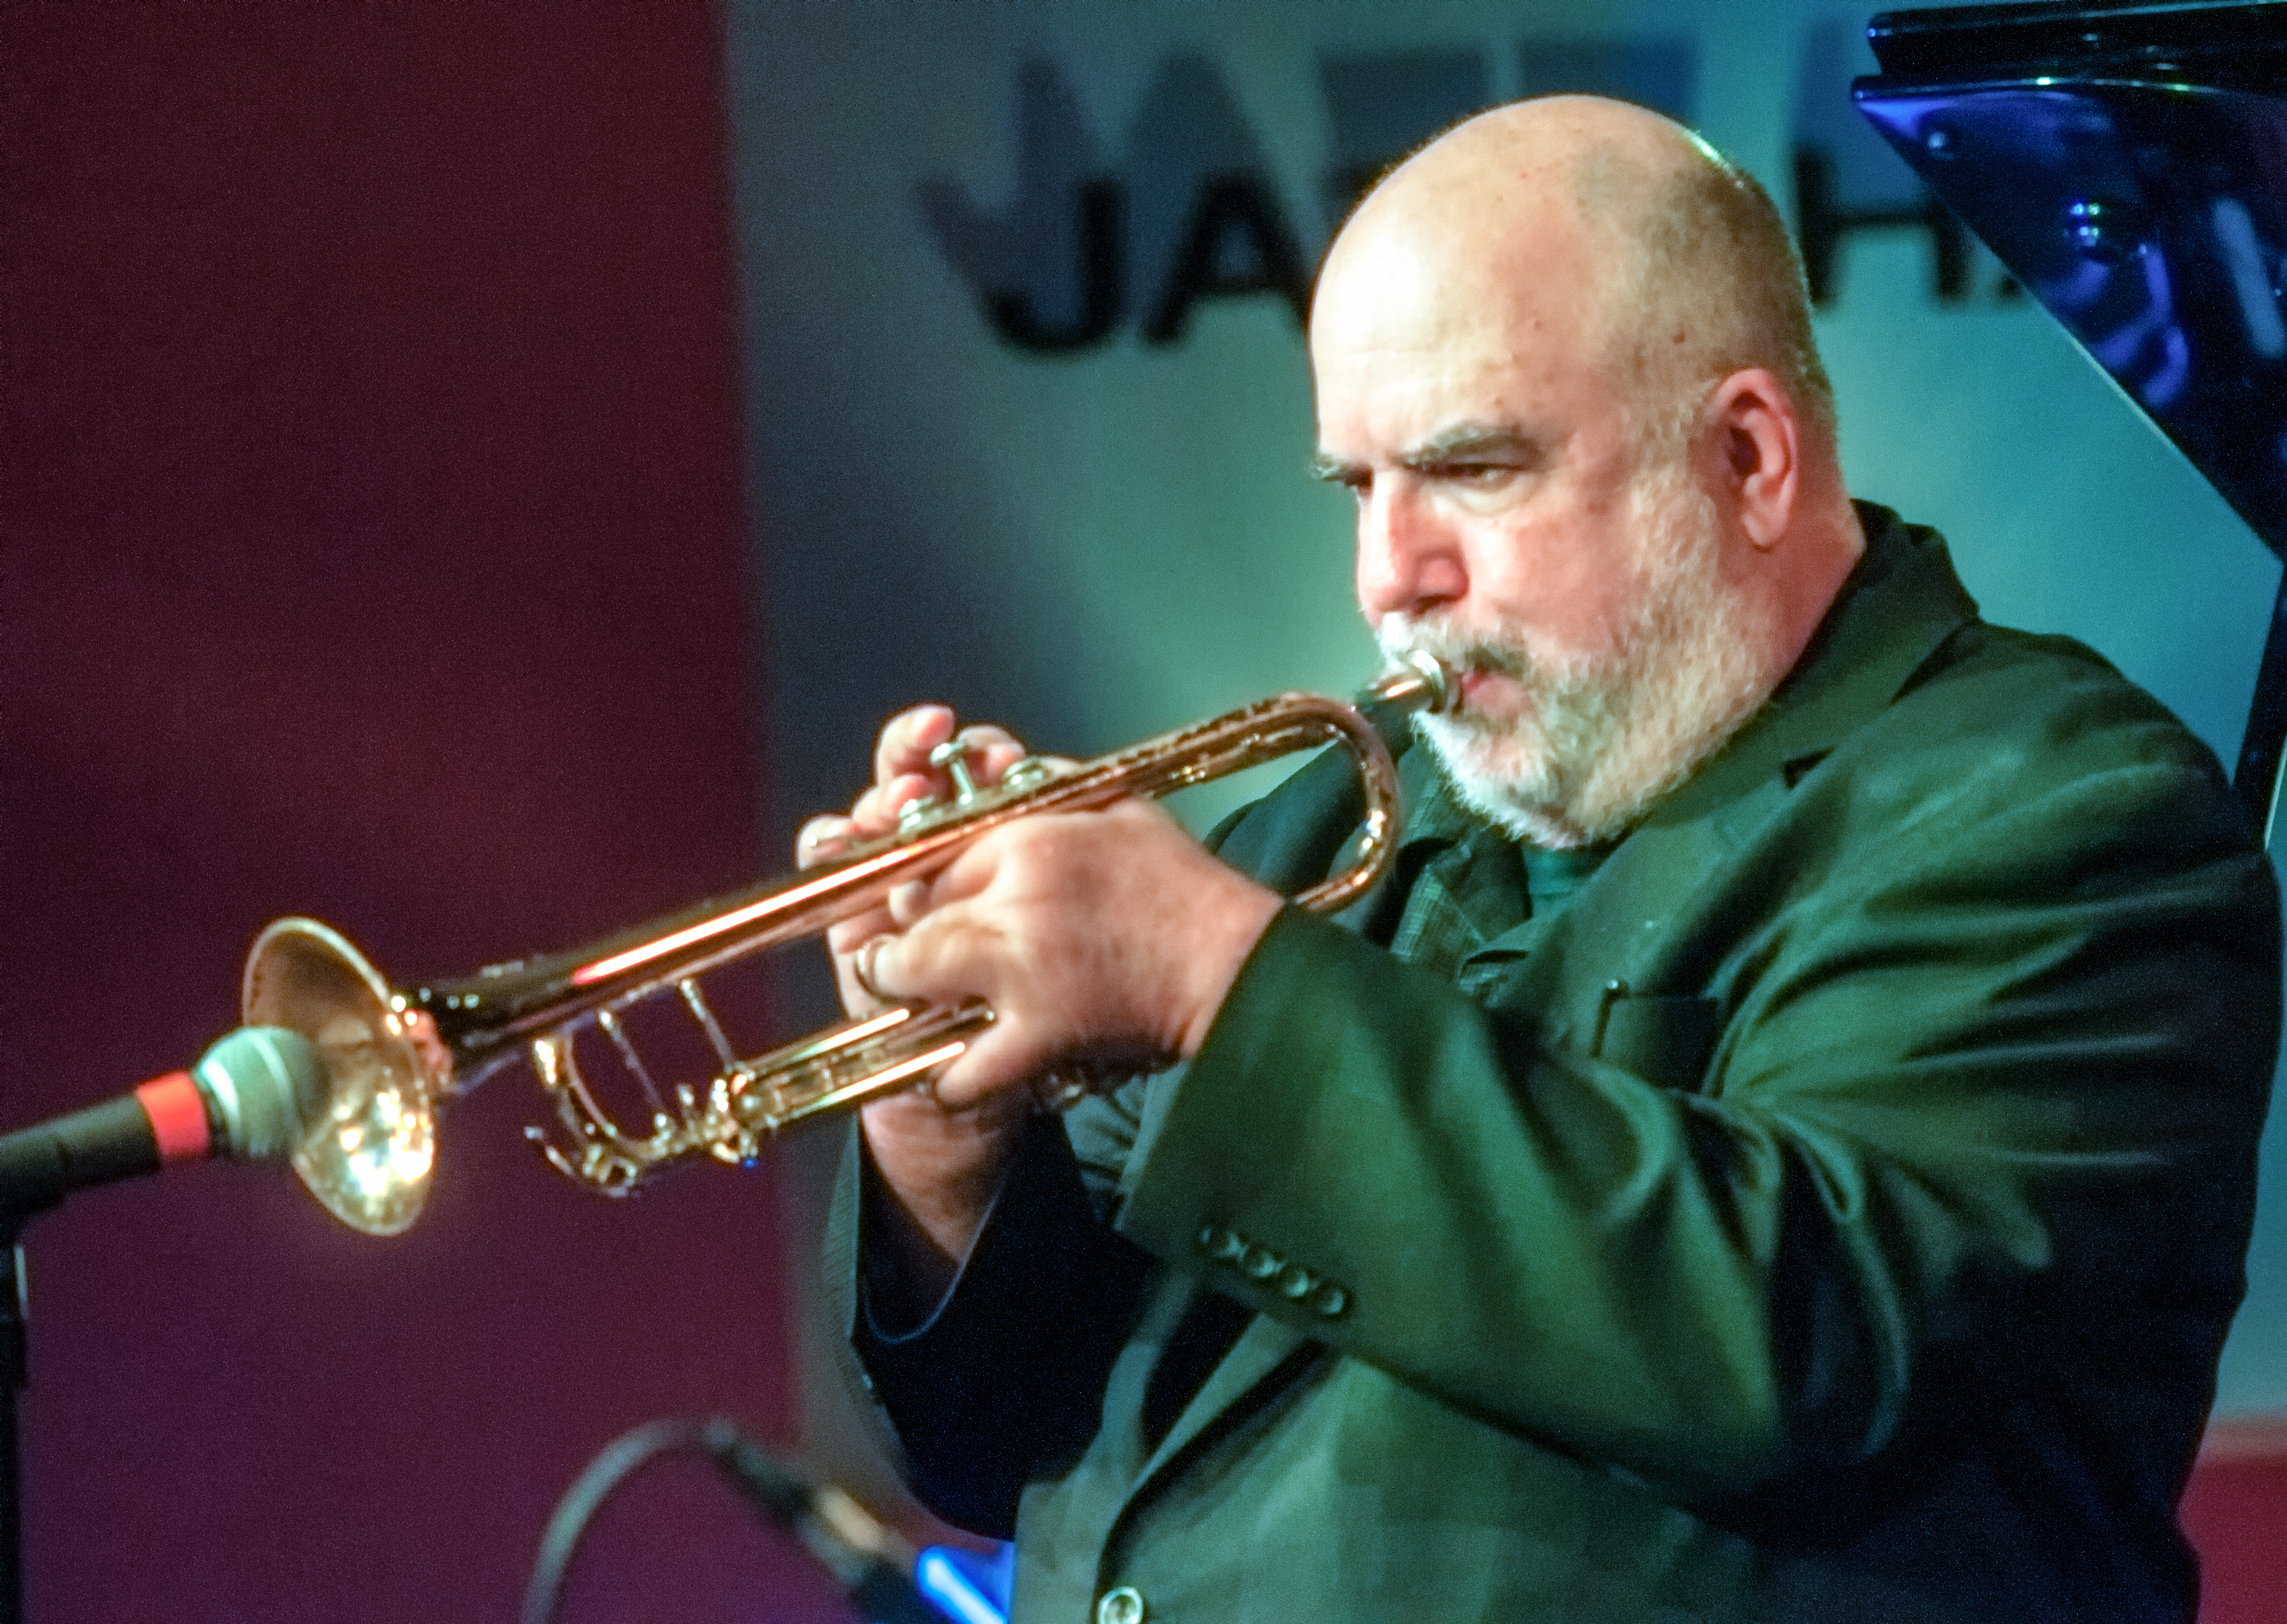 Randy Brecker With The Lewis Nash All Stars At The Nash In Phoenix